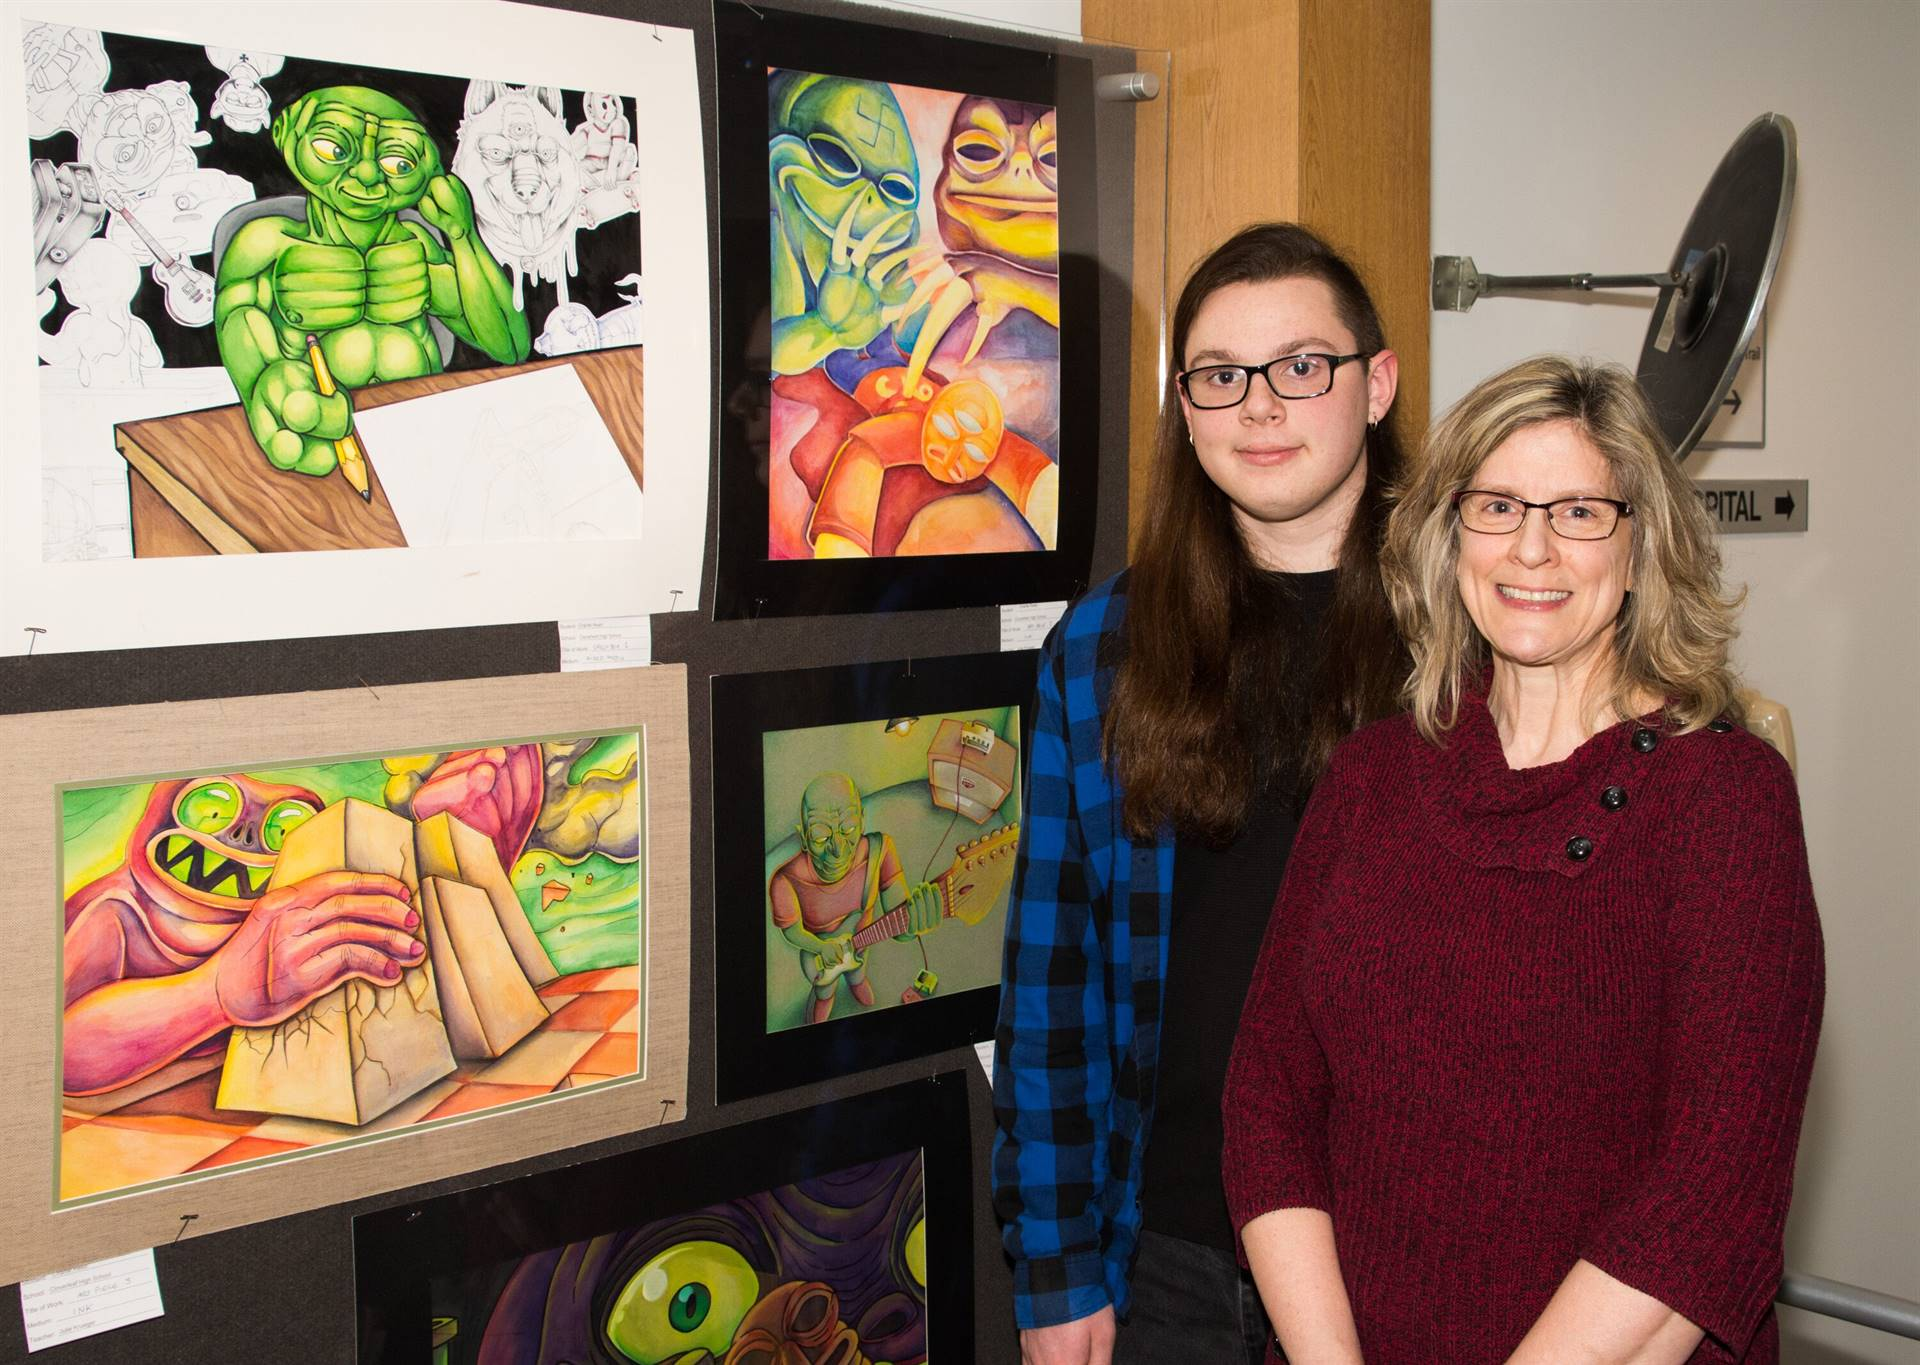 Charlie Reed, First Place 2019 Non-Scholarship Portfolio Winner, with Julie Krueger, art teacher